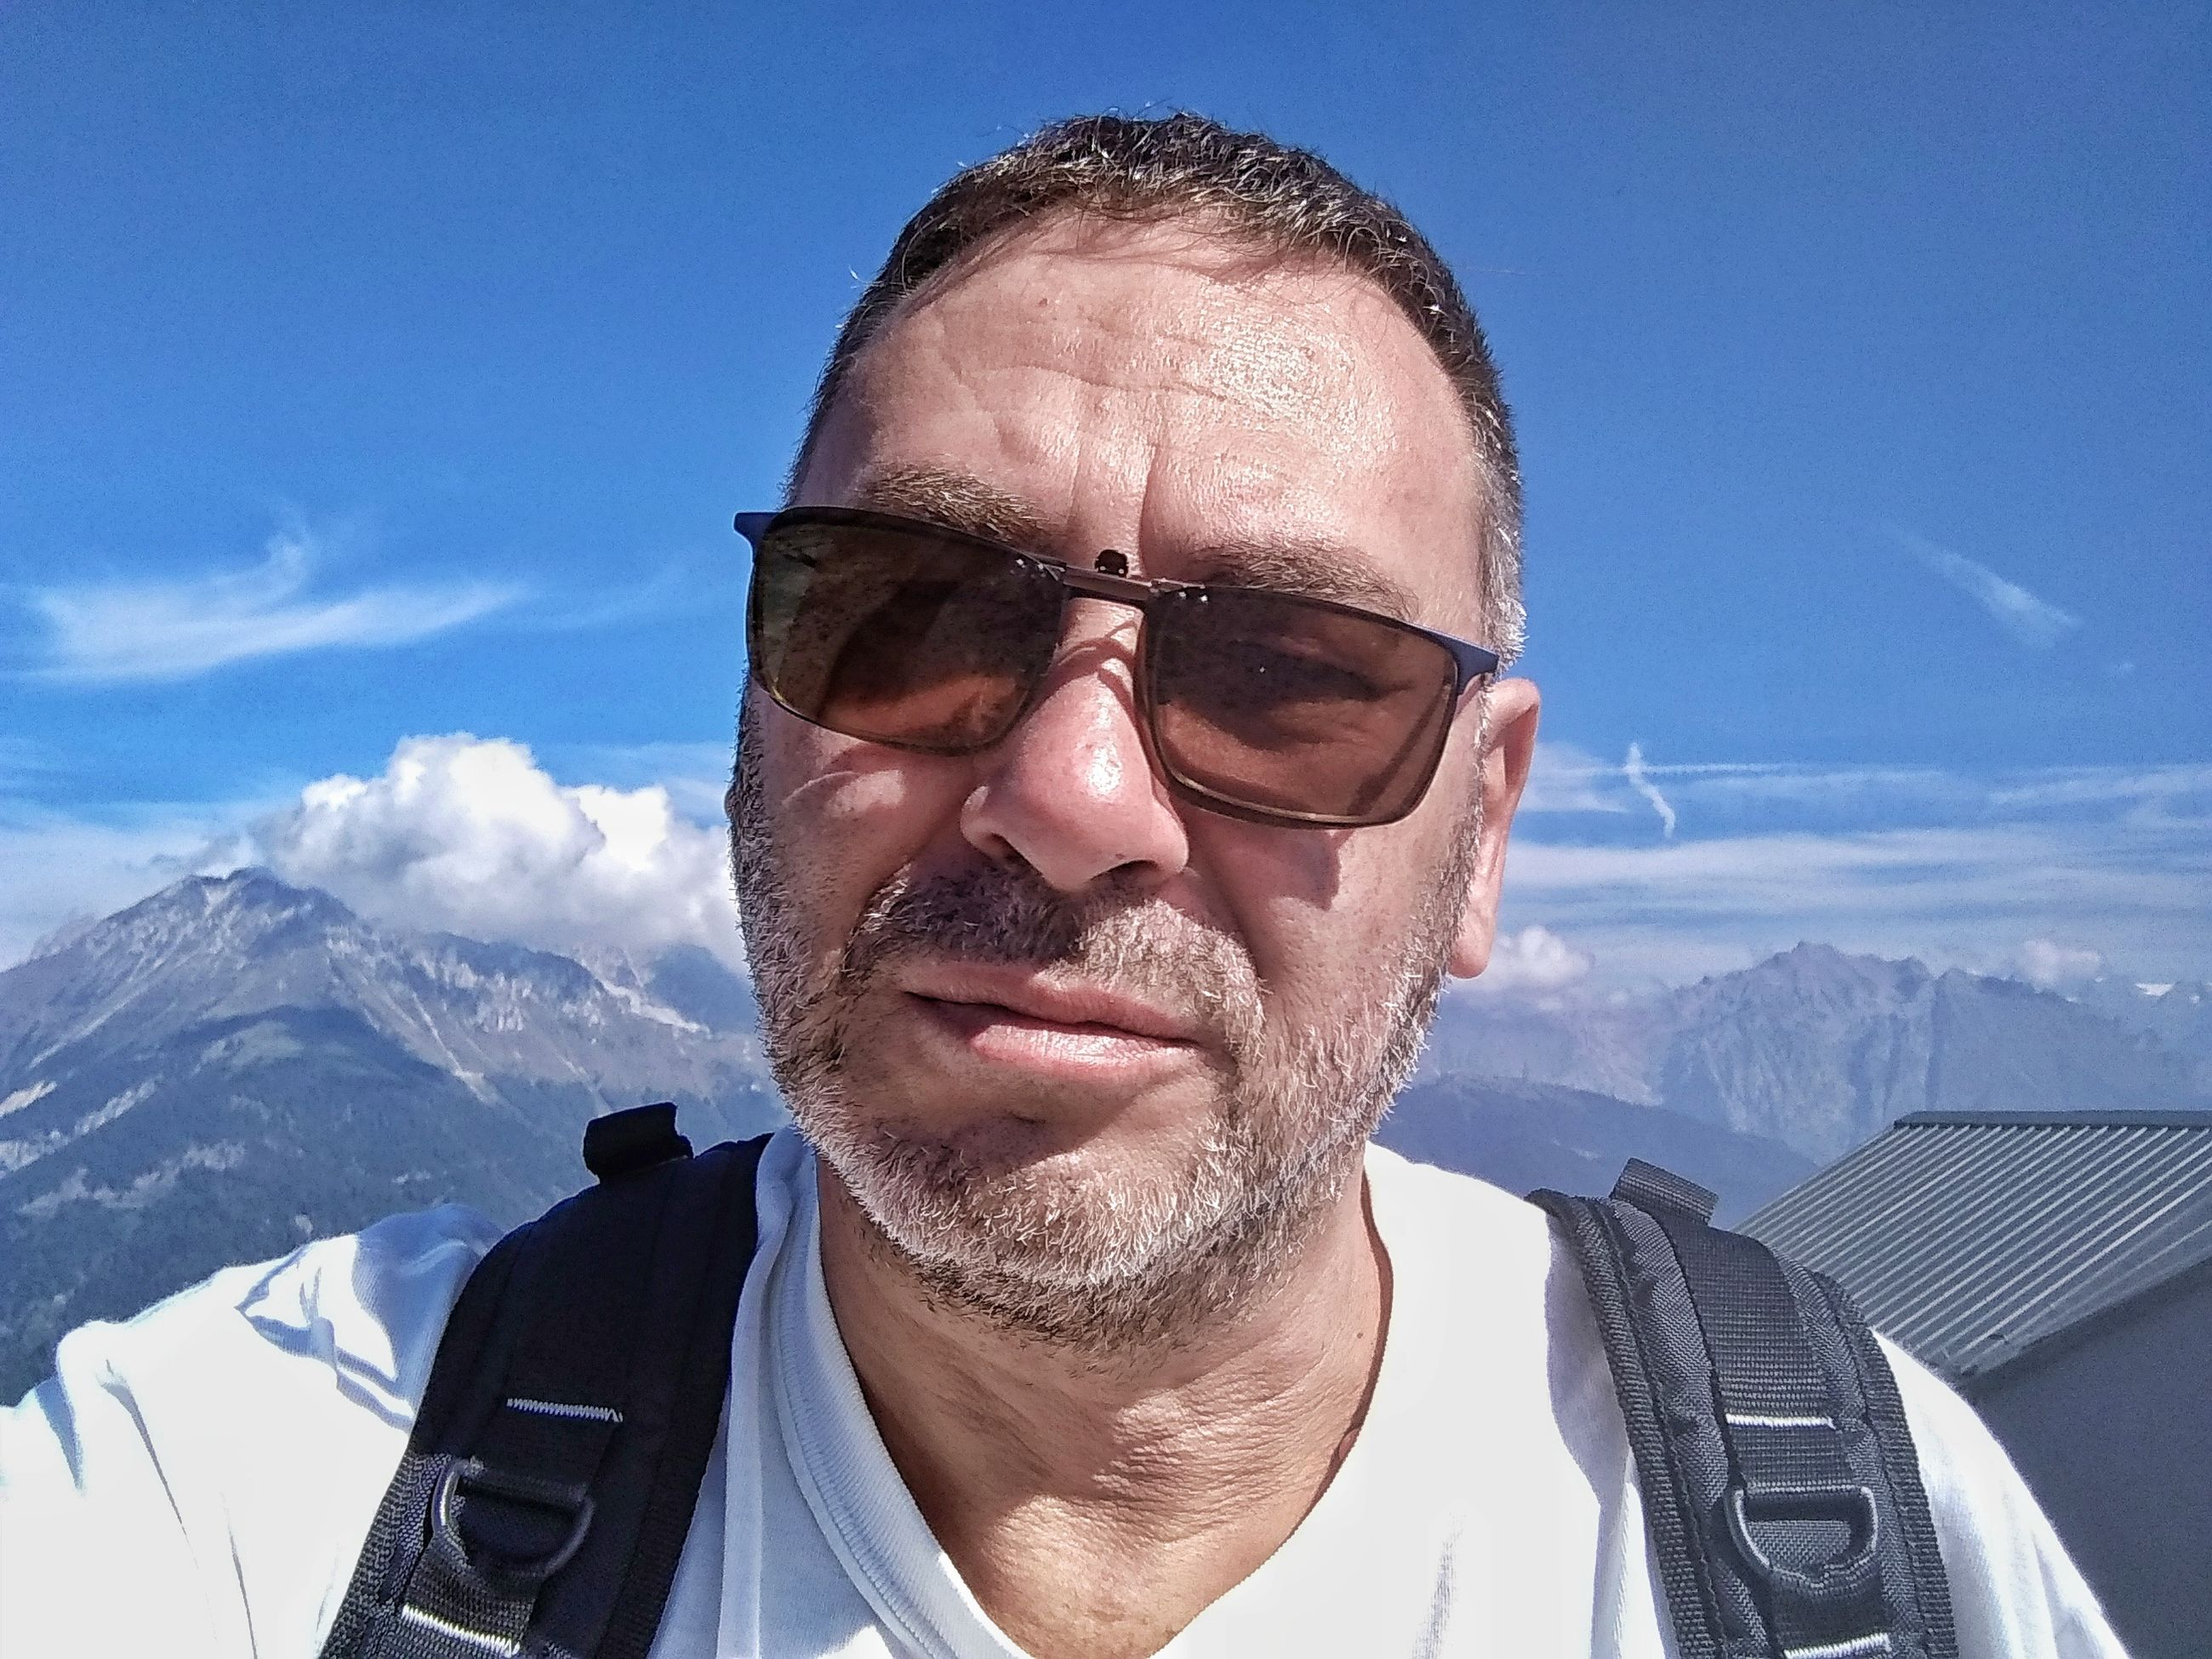 portrait, sky, males, real people, men, winter, mountain, leisure activity, one person, lifestyles, front view, mature men, mid adult men, headshot, glasses, nature, looking at camera, snow, mature adult, mountain range, outdoors, snowcapped mountain